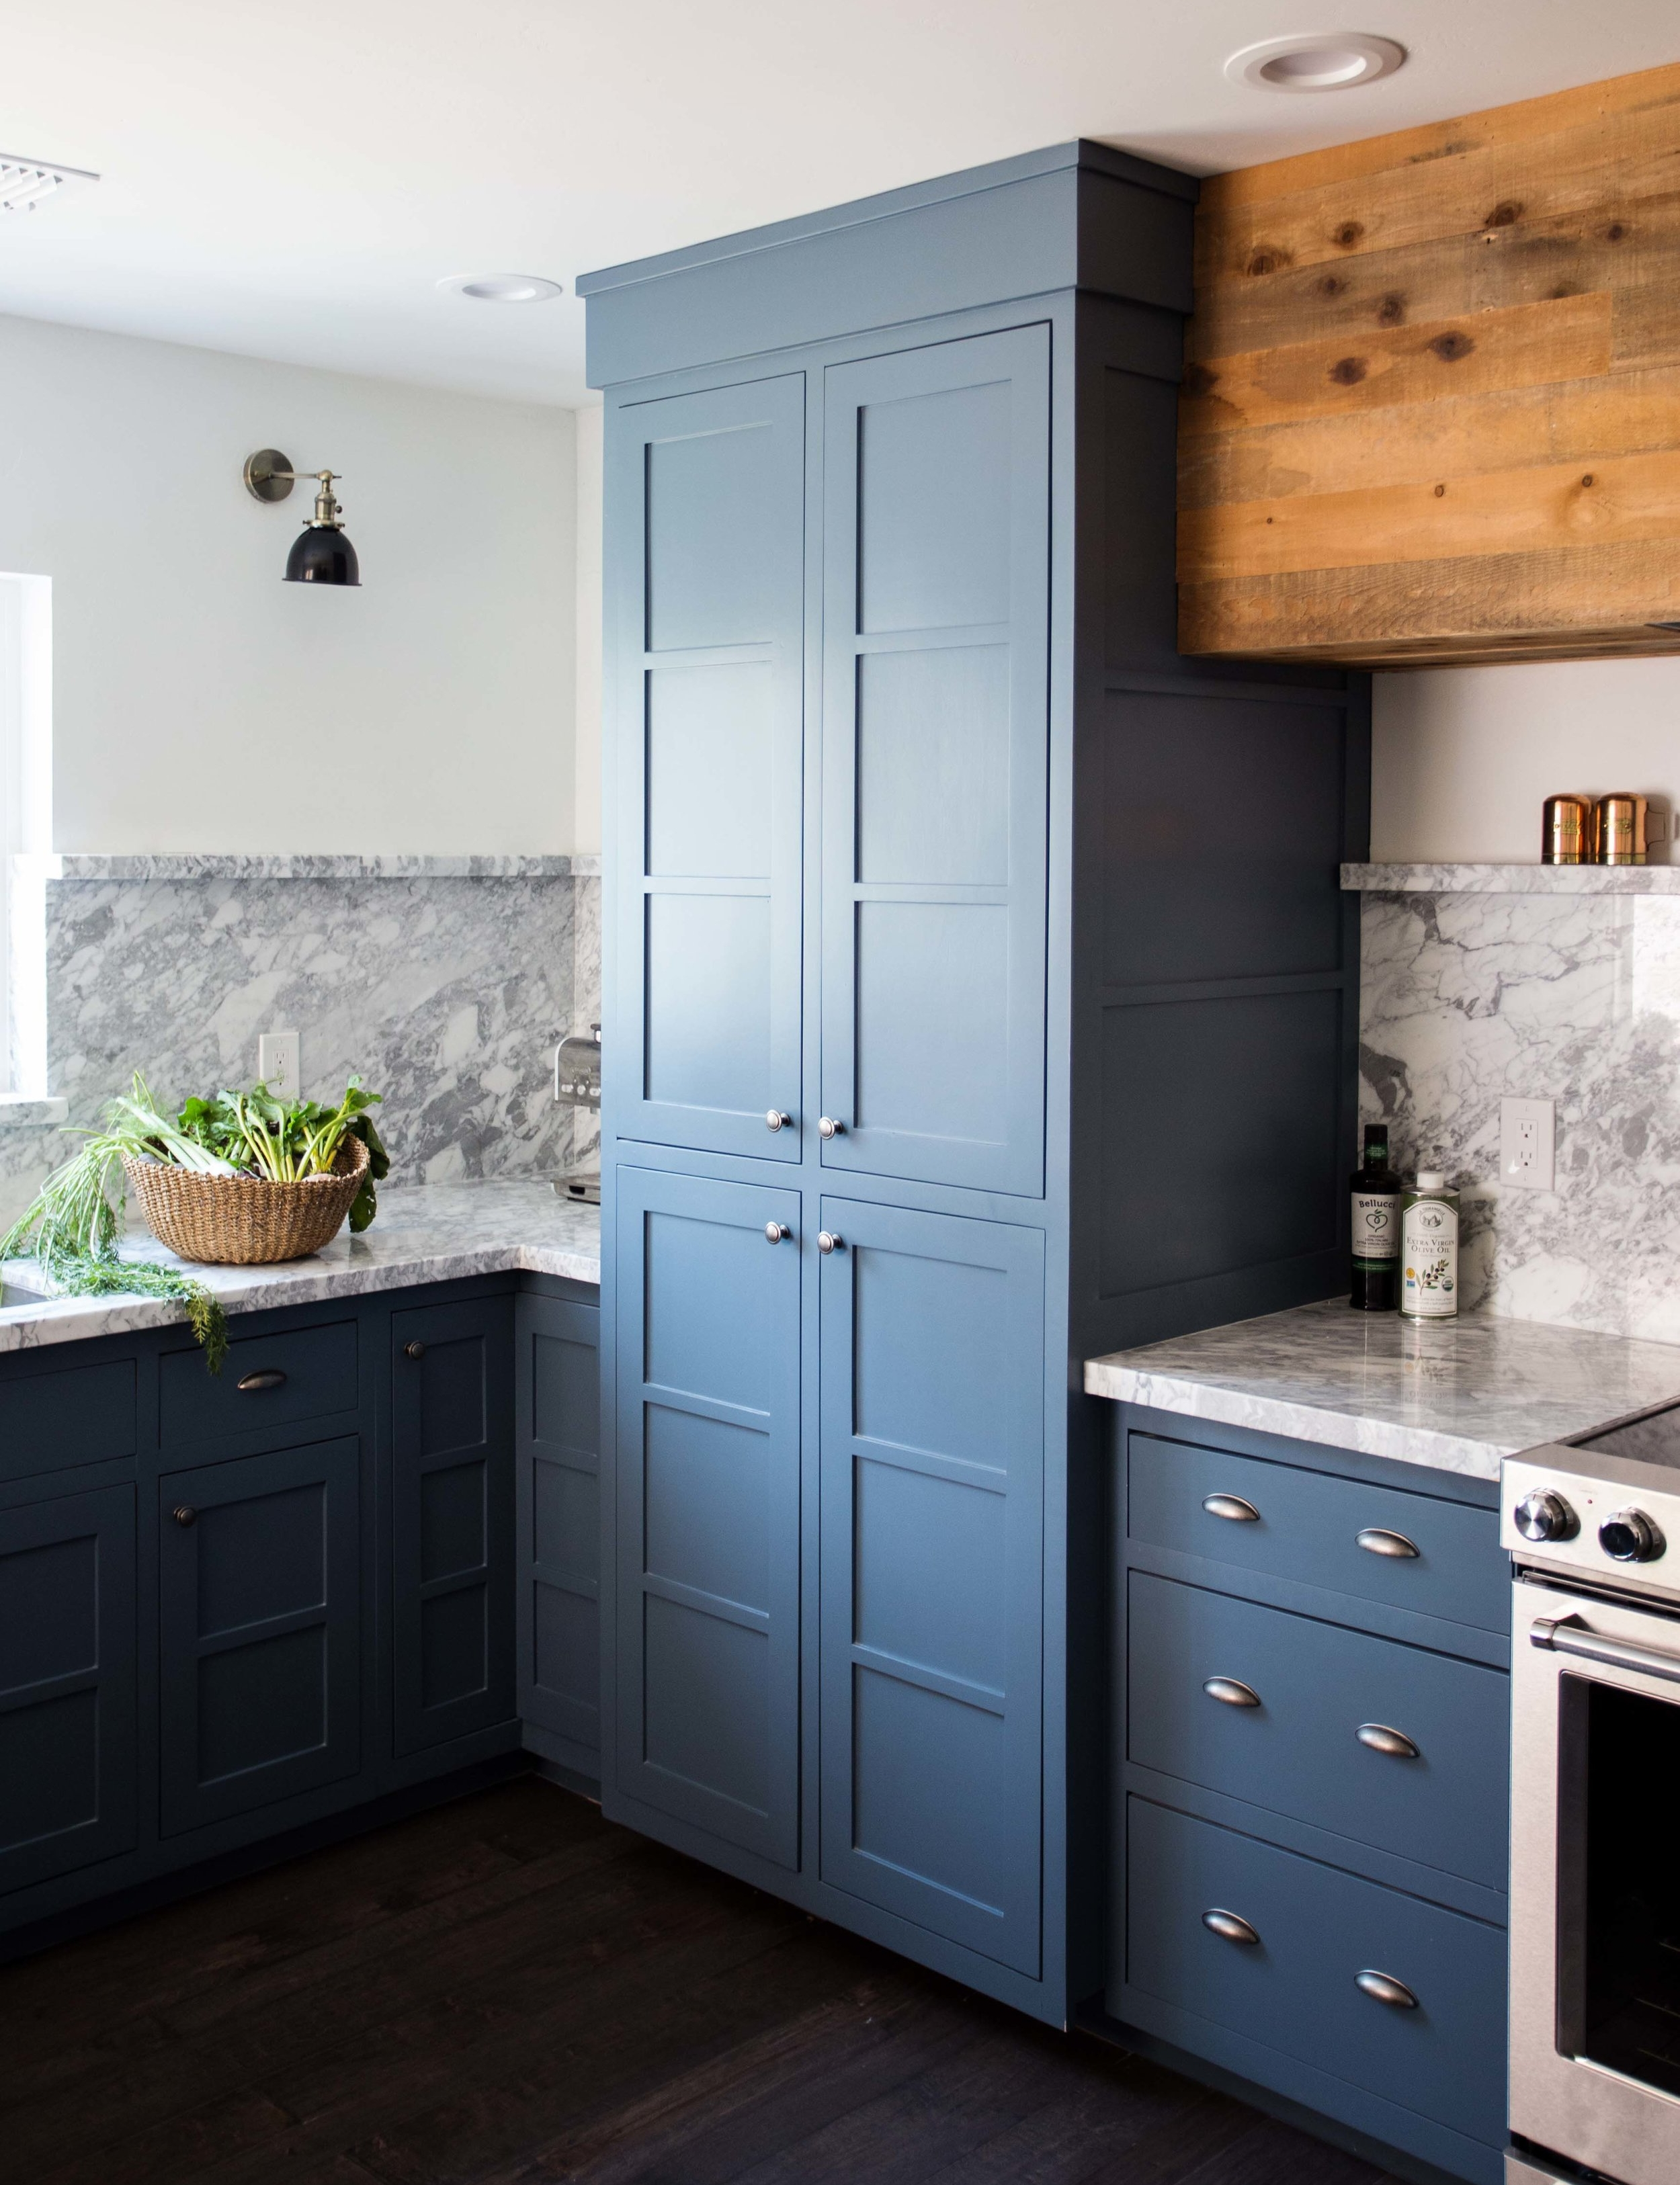 Clarendon Kitchen Pantry shaker style cabinet blue marble curb backsplash